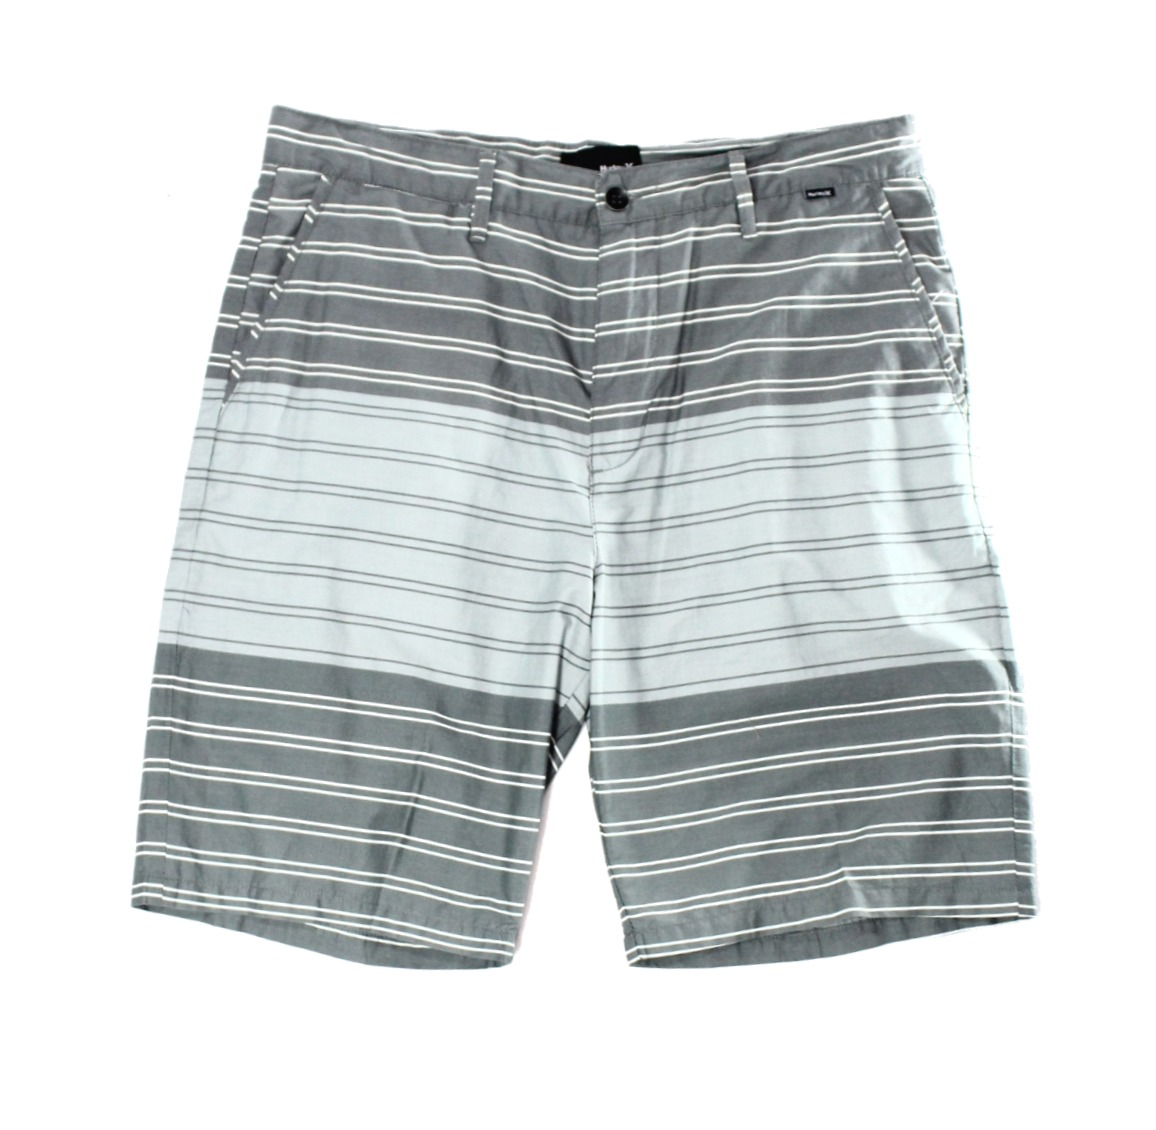 Hurley NEW Gray Mens Size 31 Casual Stripe Flat Front Shorts $49